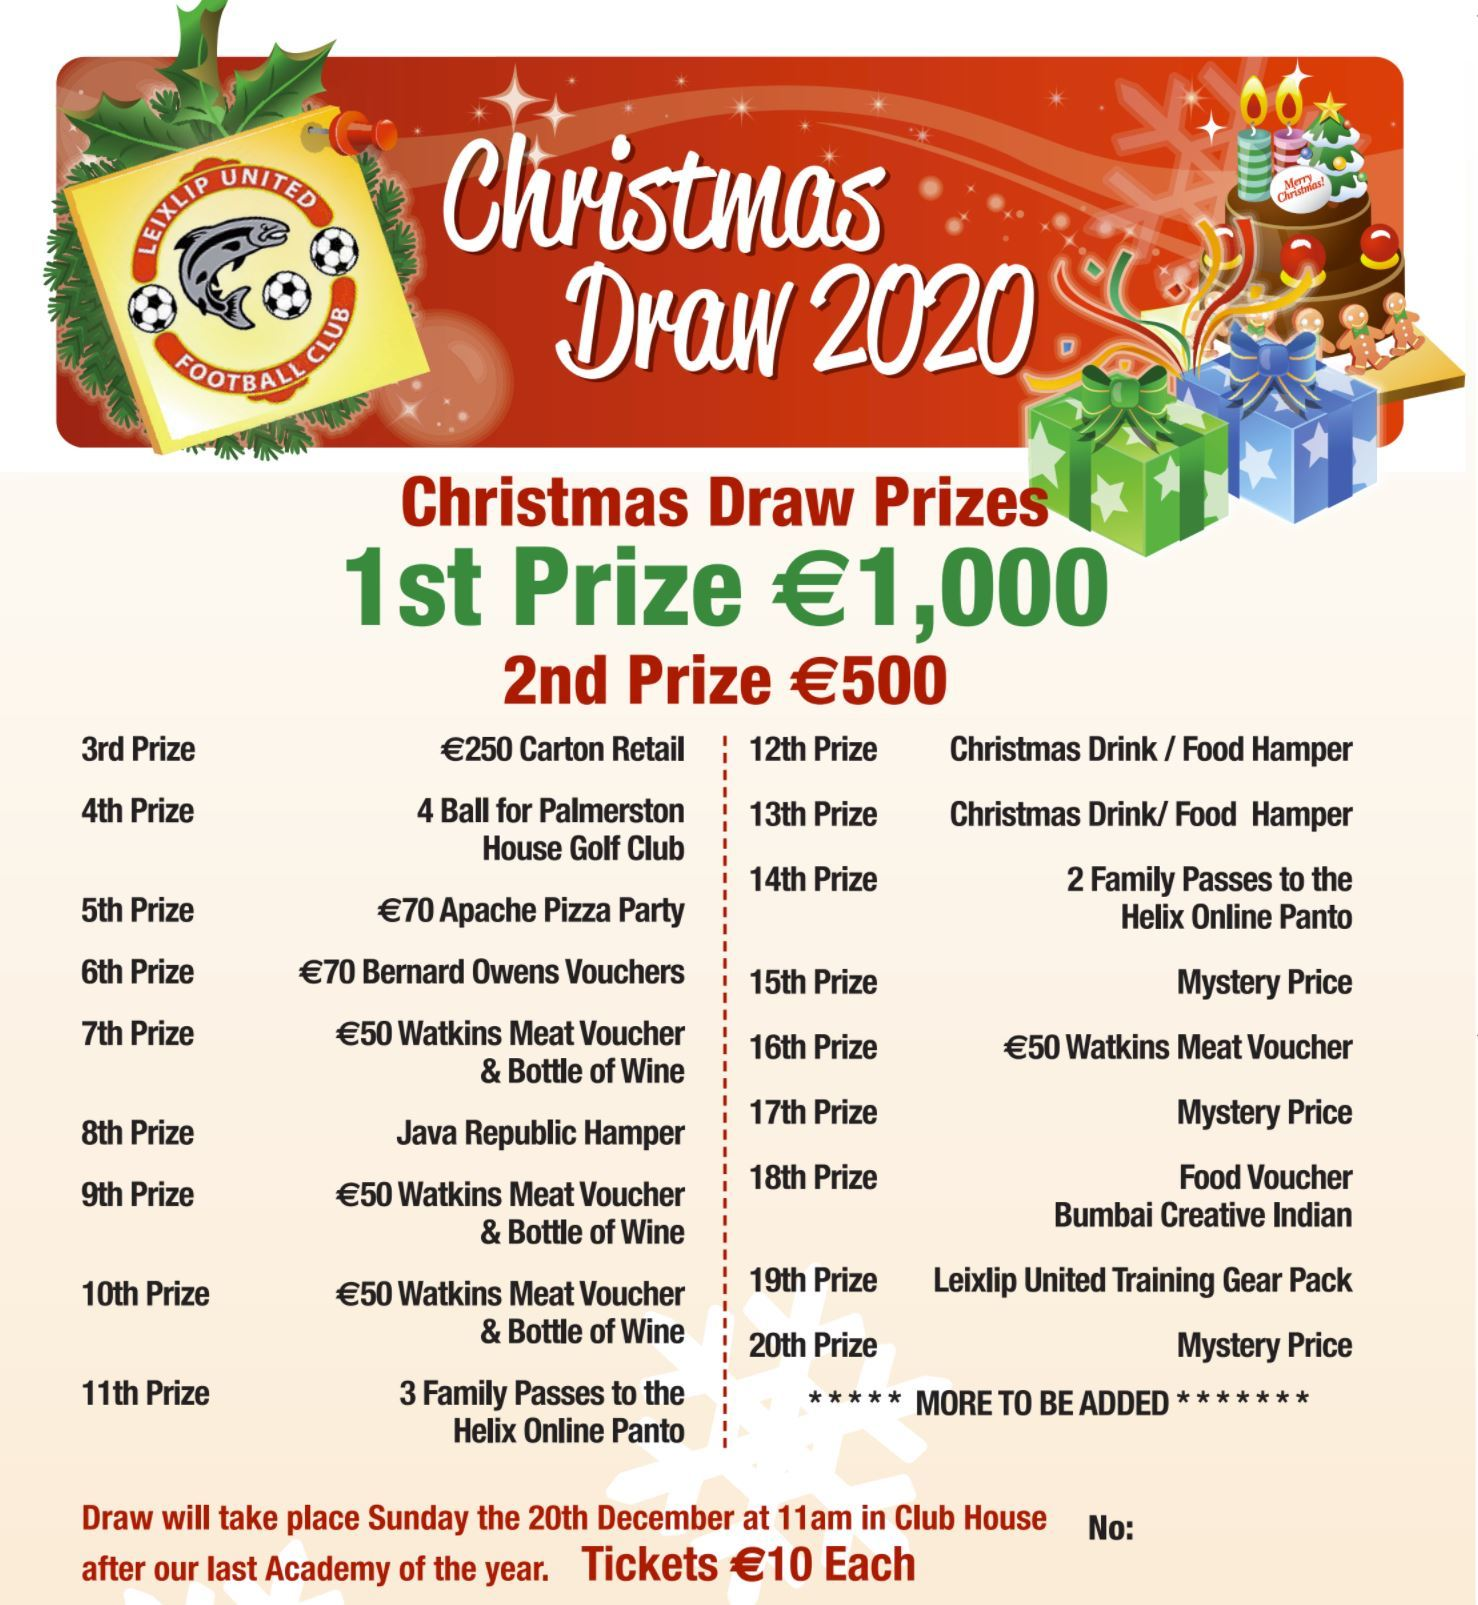 Christmasdraw2020